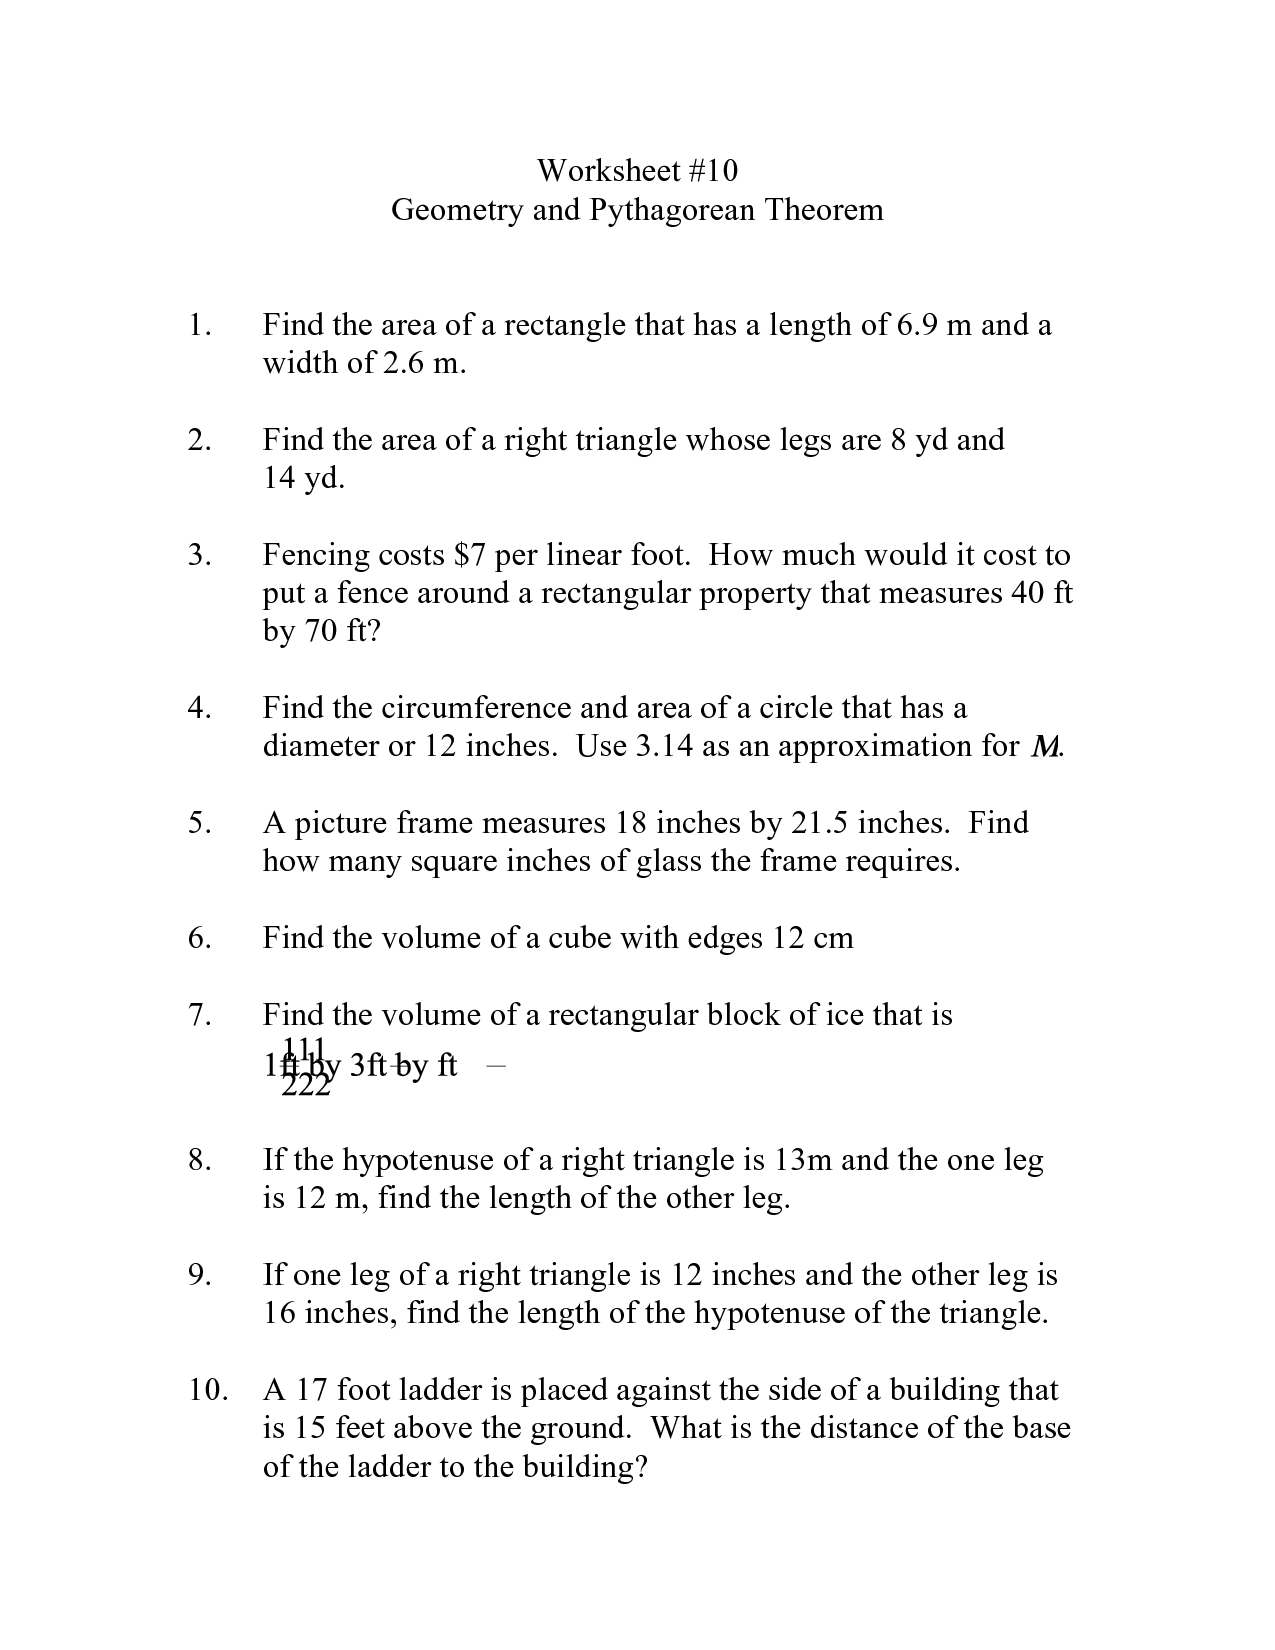 Pythagorean Theorem Word Problems Worksheet